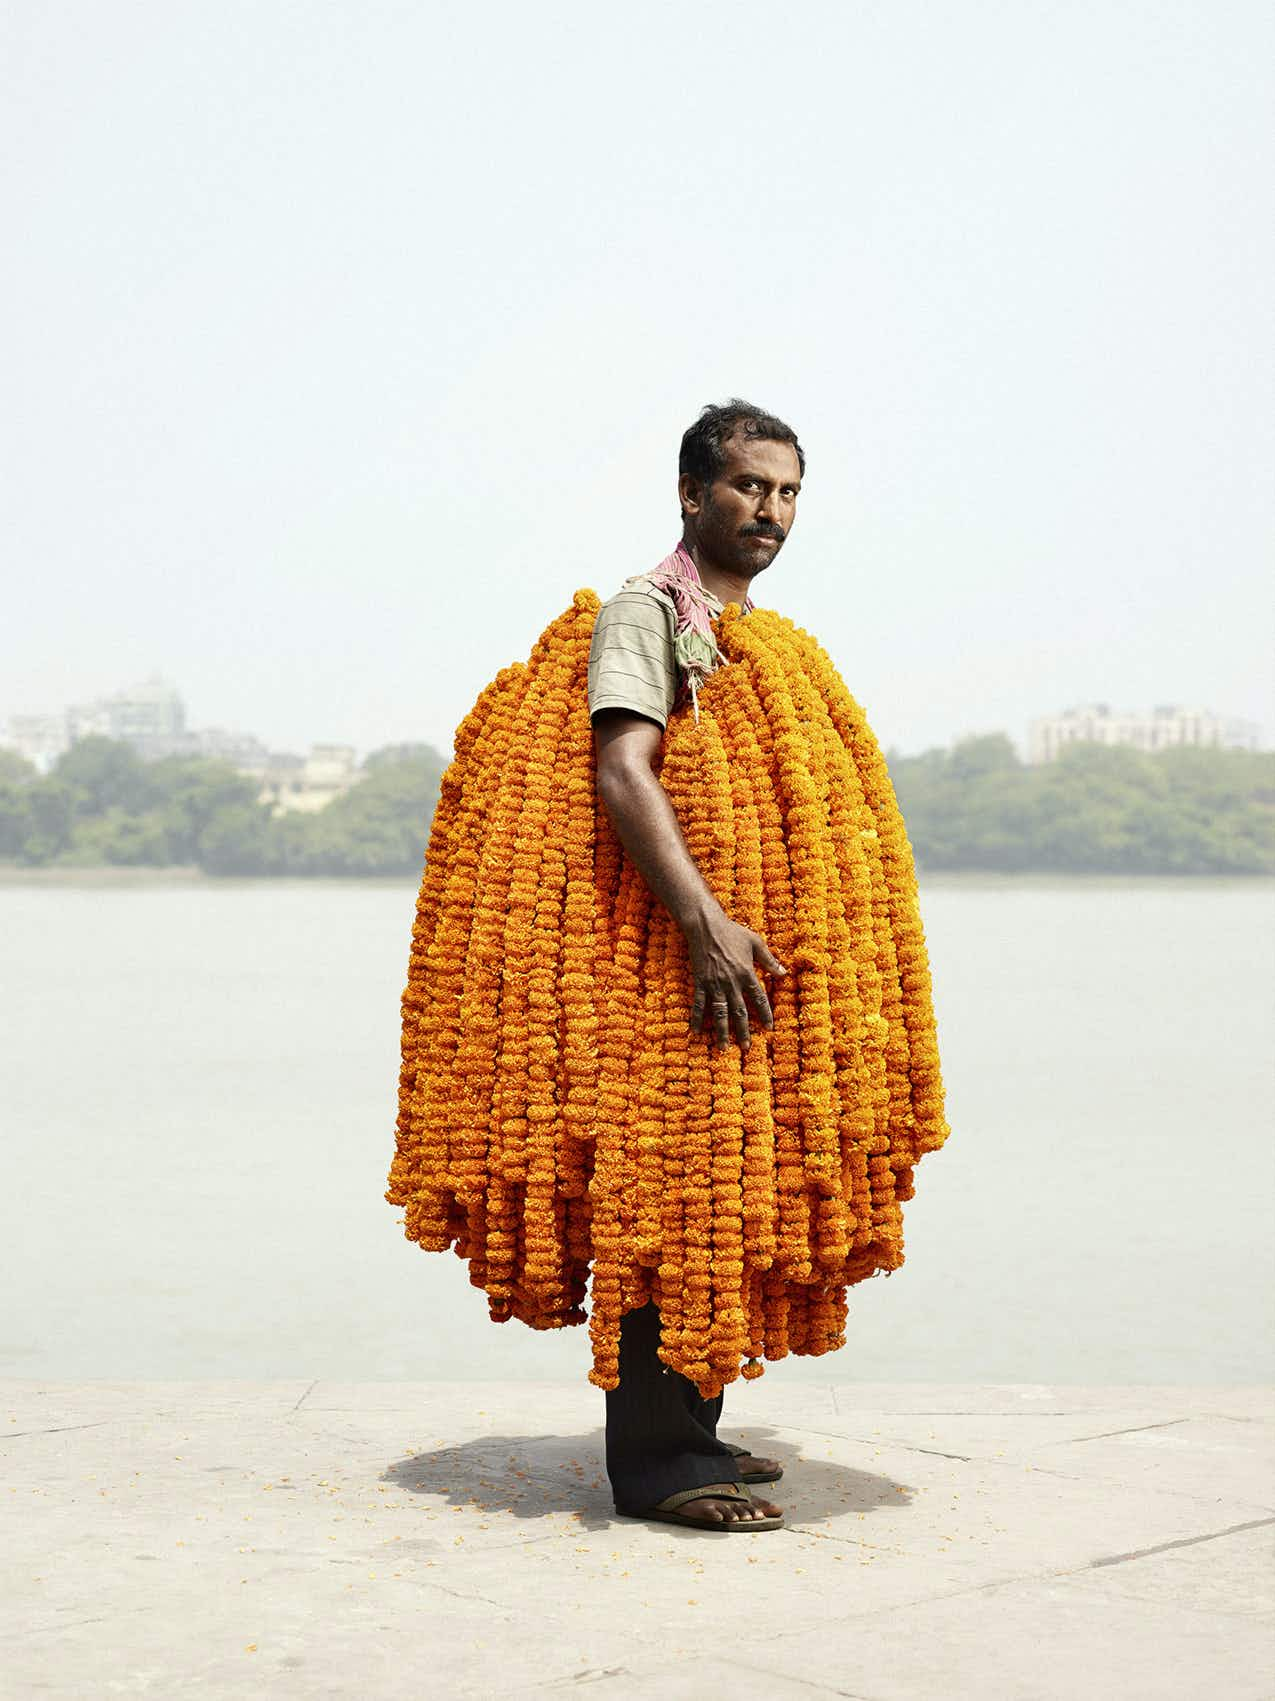 A traveller took these stunning portraits of the 'flower men' of Kolkata